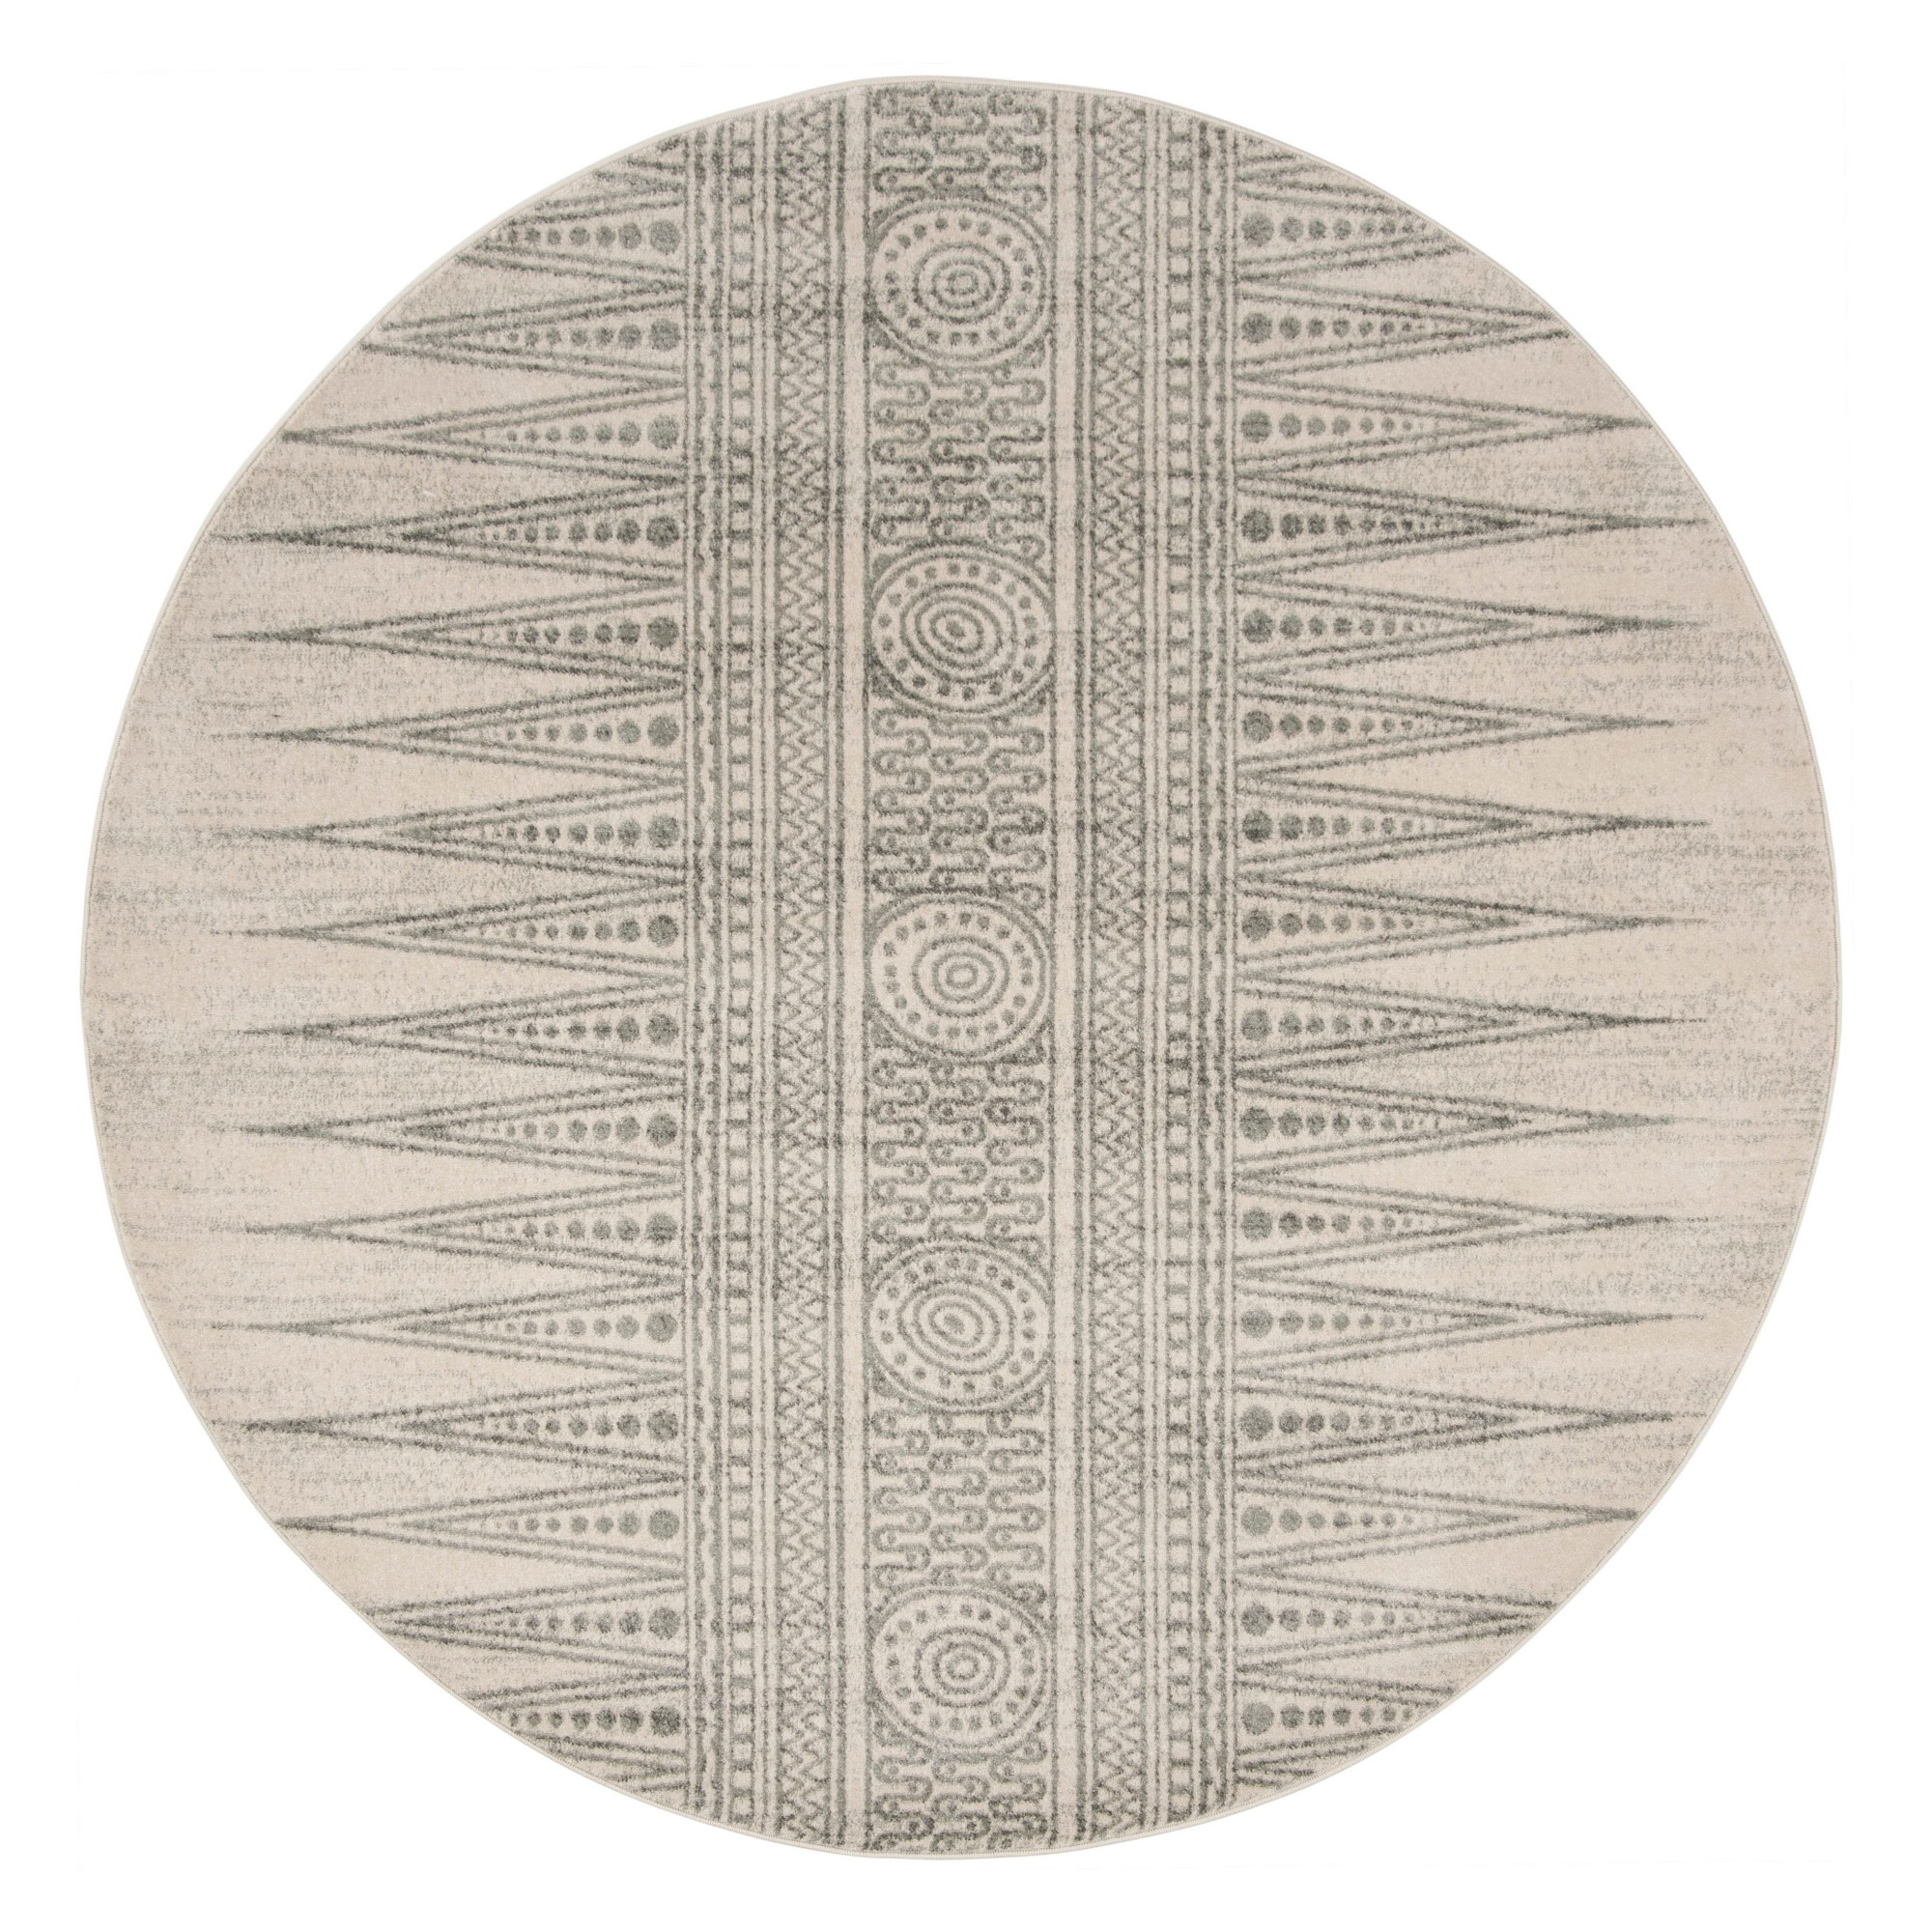 6'7 Tribal Design Loomed Round Area Rug Ivory/Silver - Safavieh